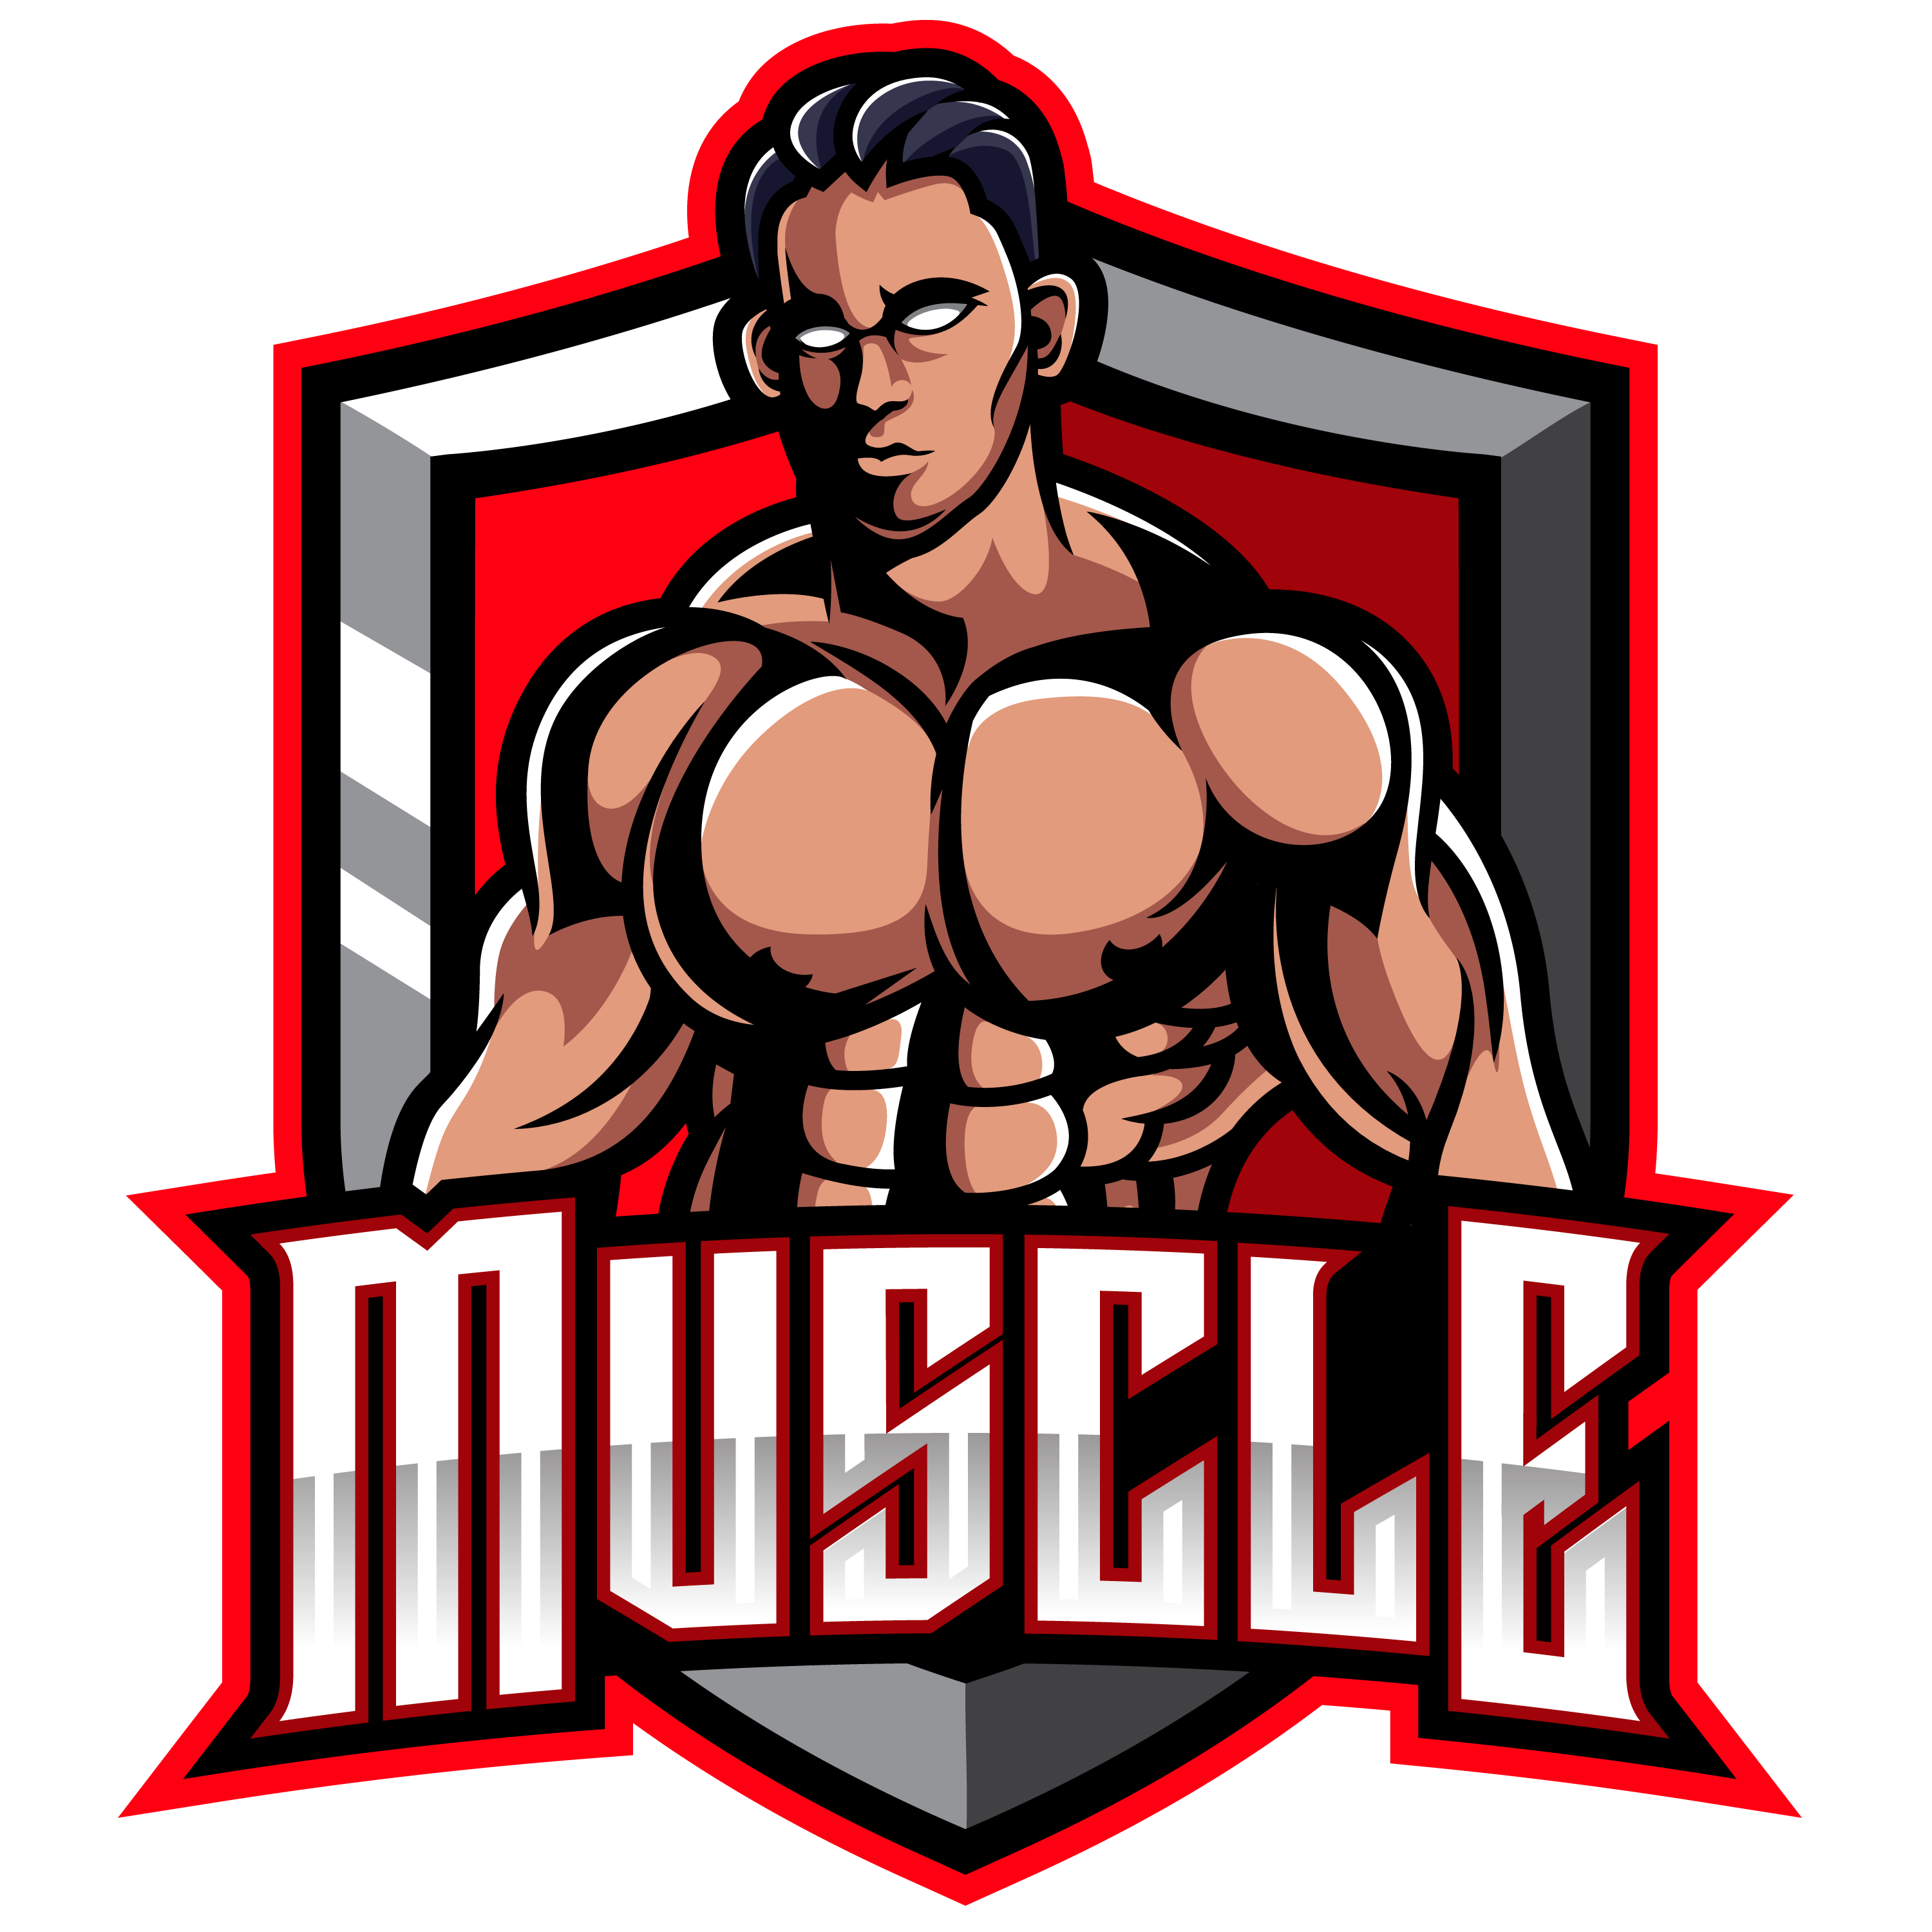 Muscle-Fighter-Esports-Mascot-Logo-PNG-transparent